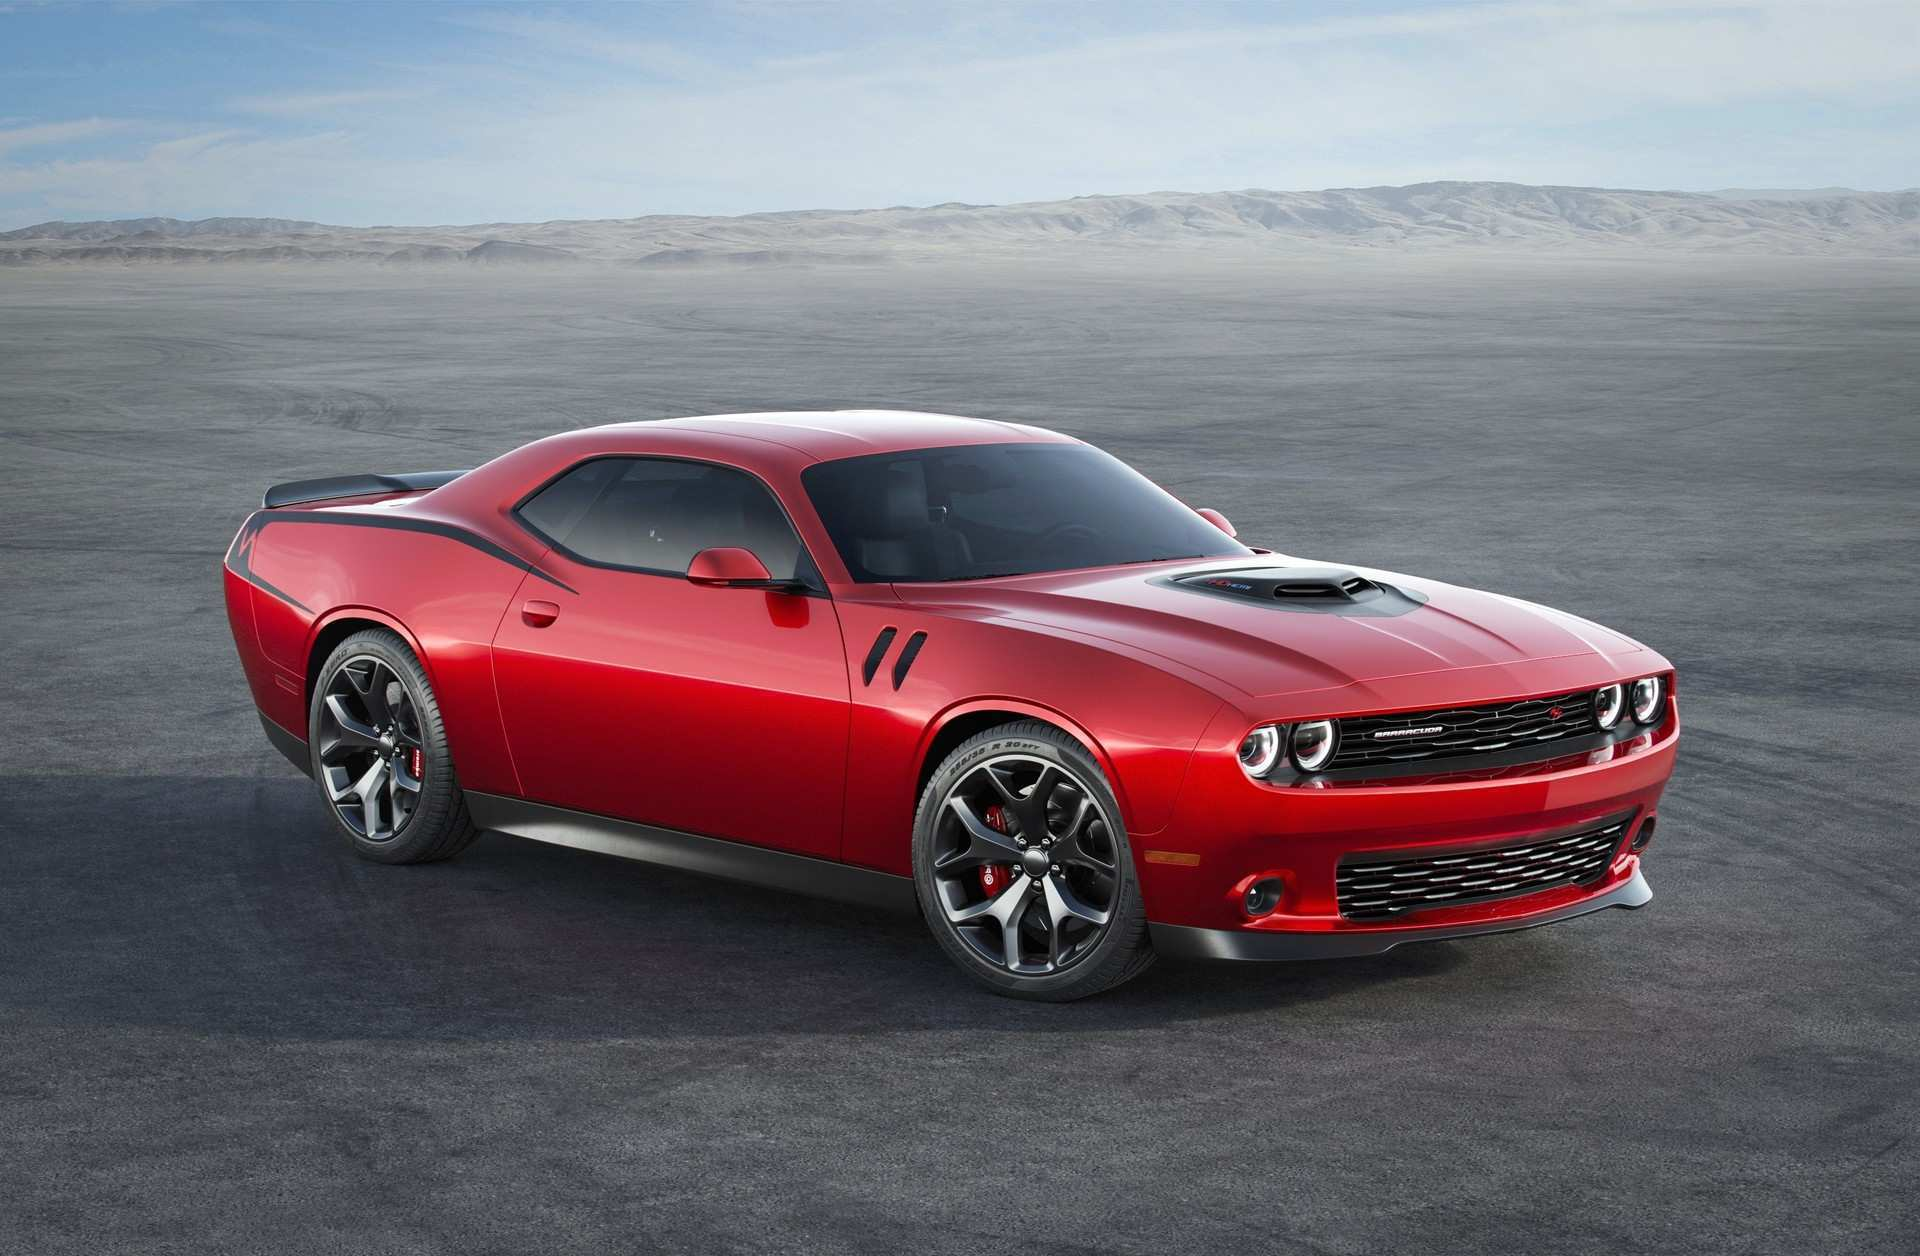 32 Gallery of 2019 Dodge Challenger Barracuda Photos with 2019 Dodge Challenger Barracuda